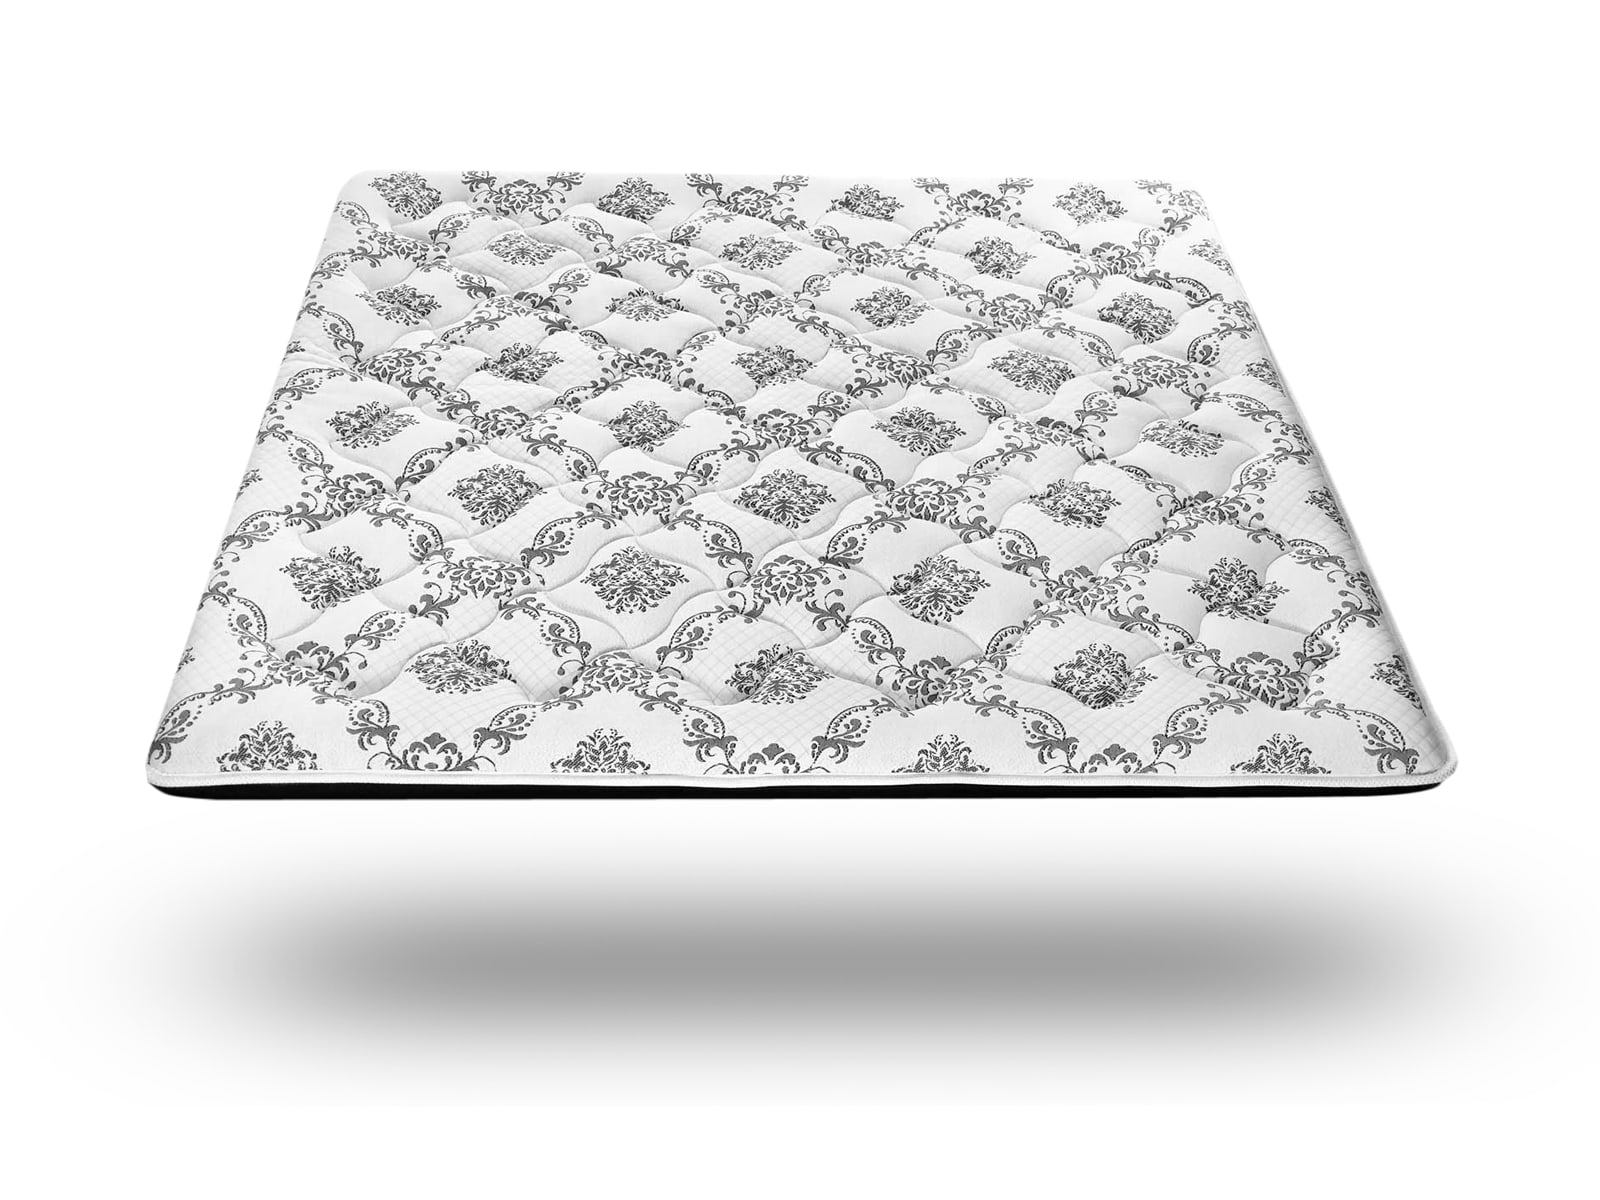 Topper Hotel 5 Stars Pillow Top Expression 5